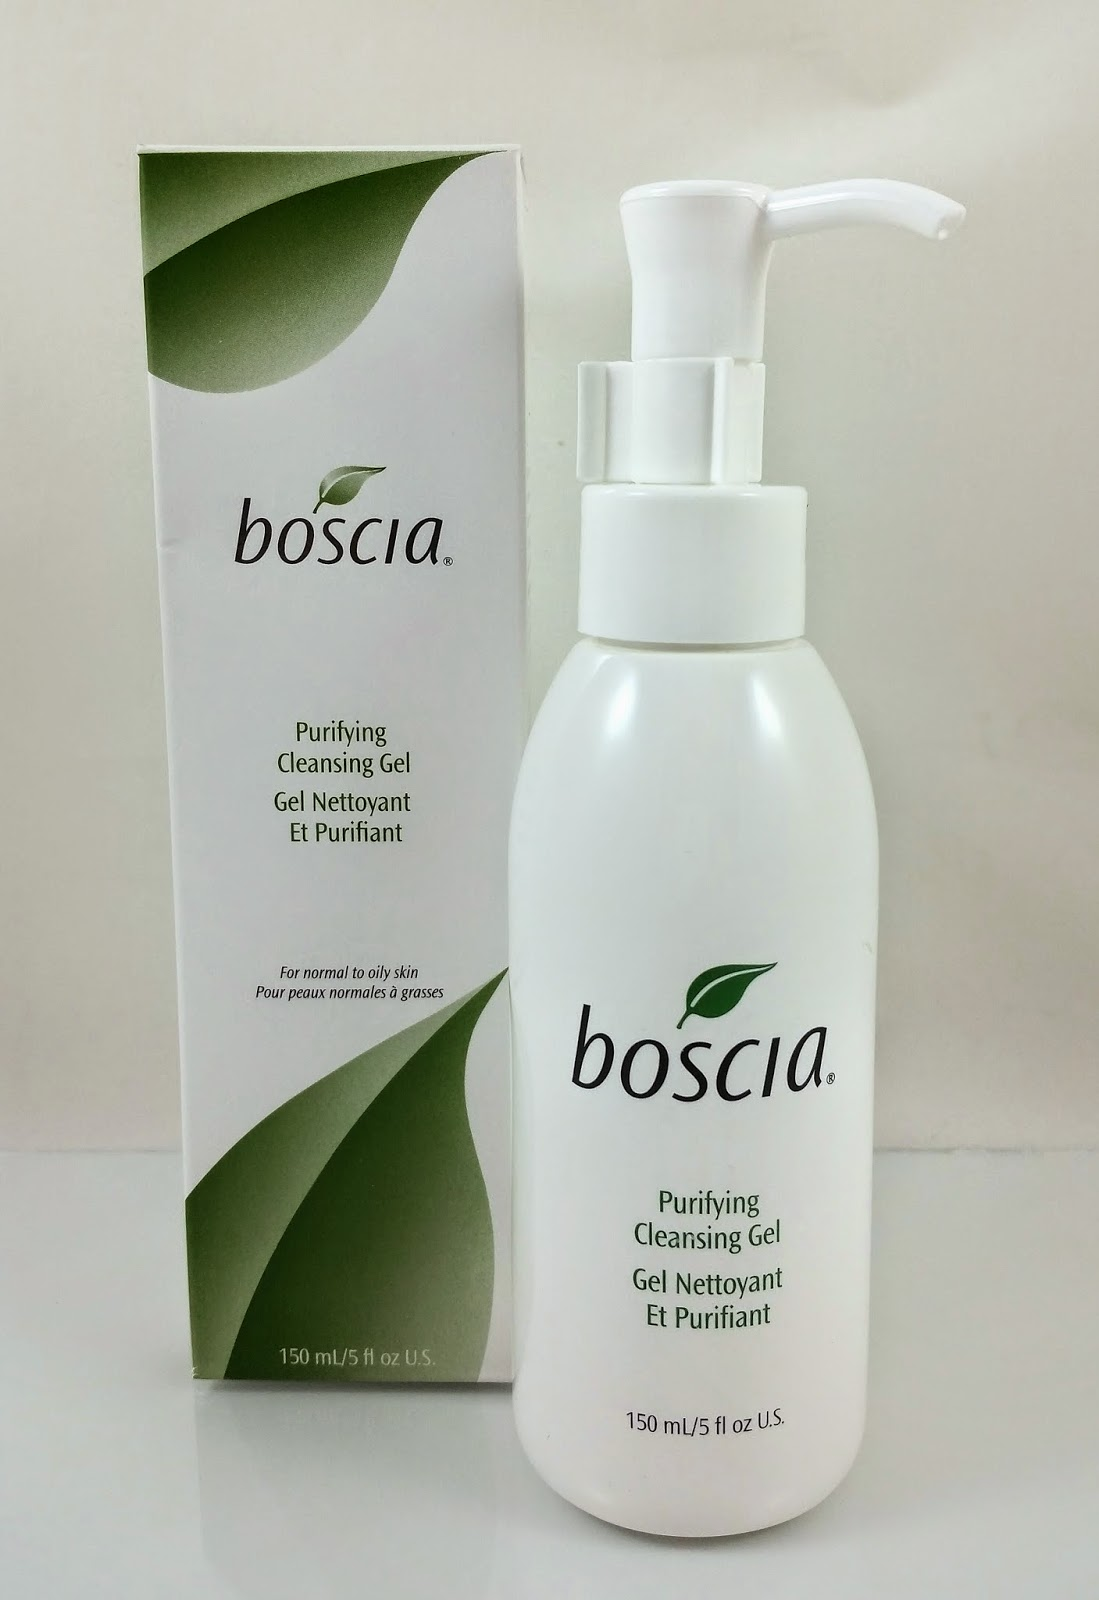 Boscia Purifying Cleansing Gel Review The Budget Beauty Blog